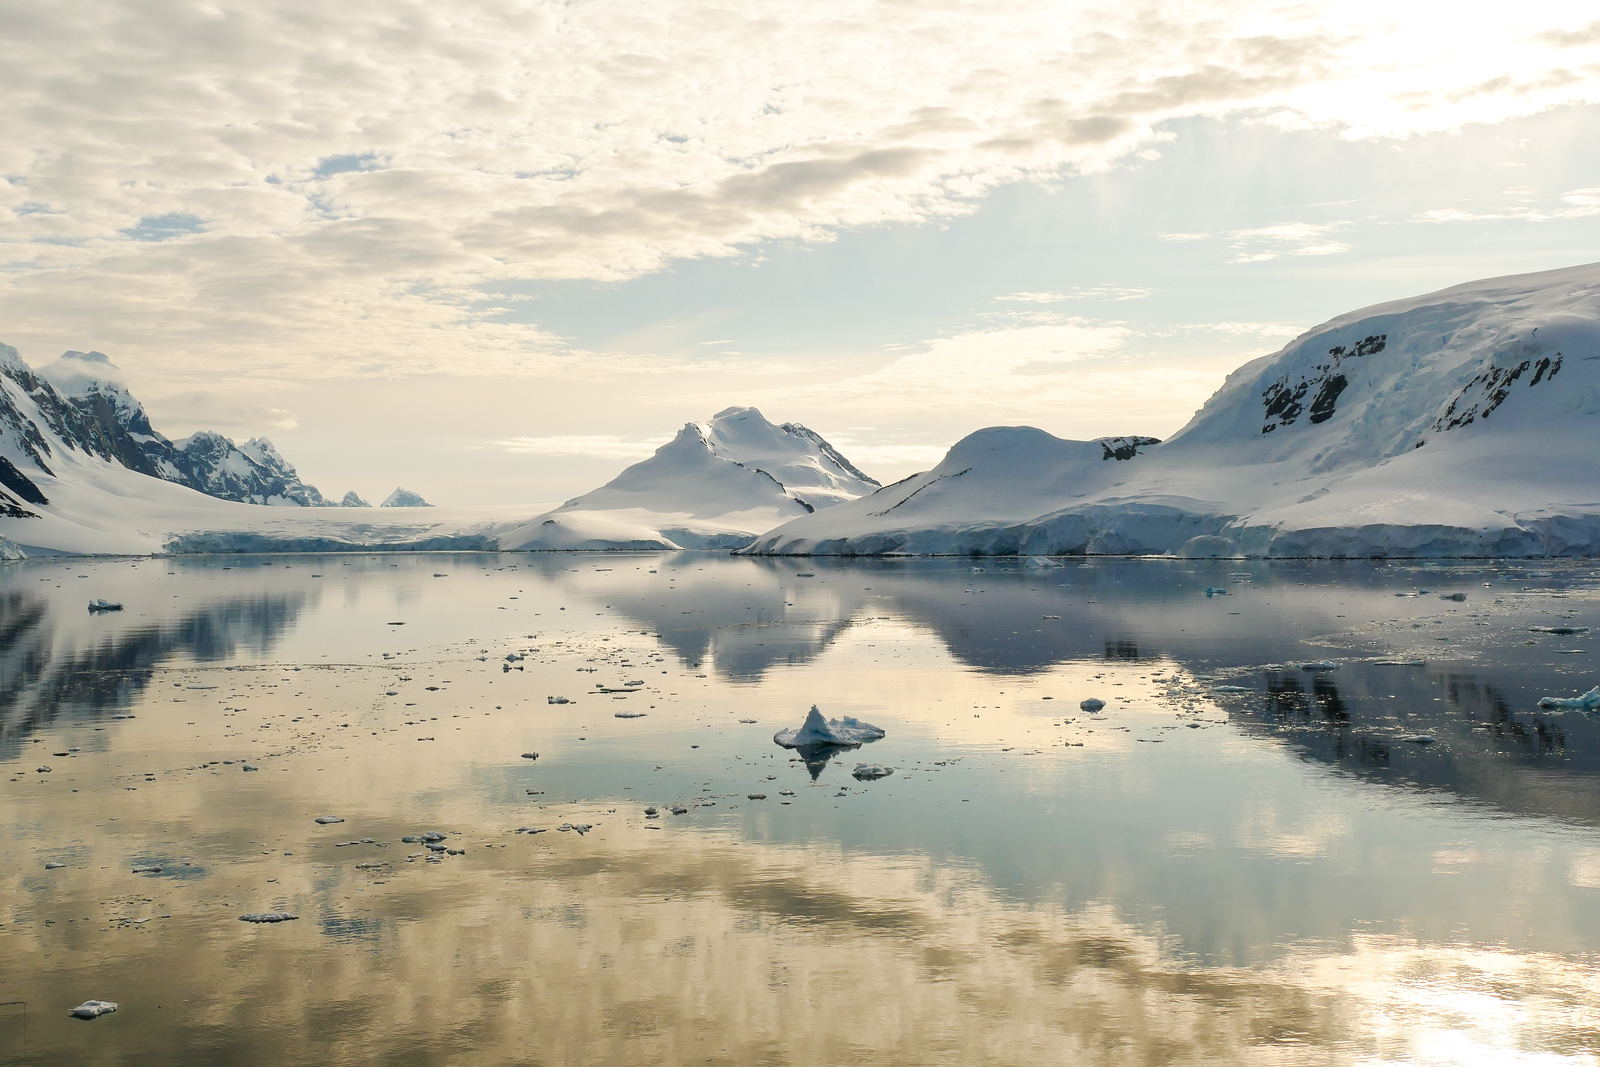 On a cruise through Neumayer Channel in Antarctica, remember to put the camera down. Soaking in the scene creates a travel memory that you'll never forget.